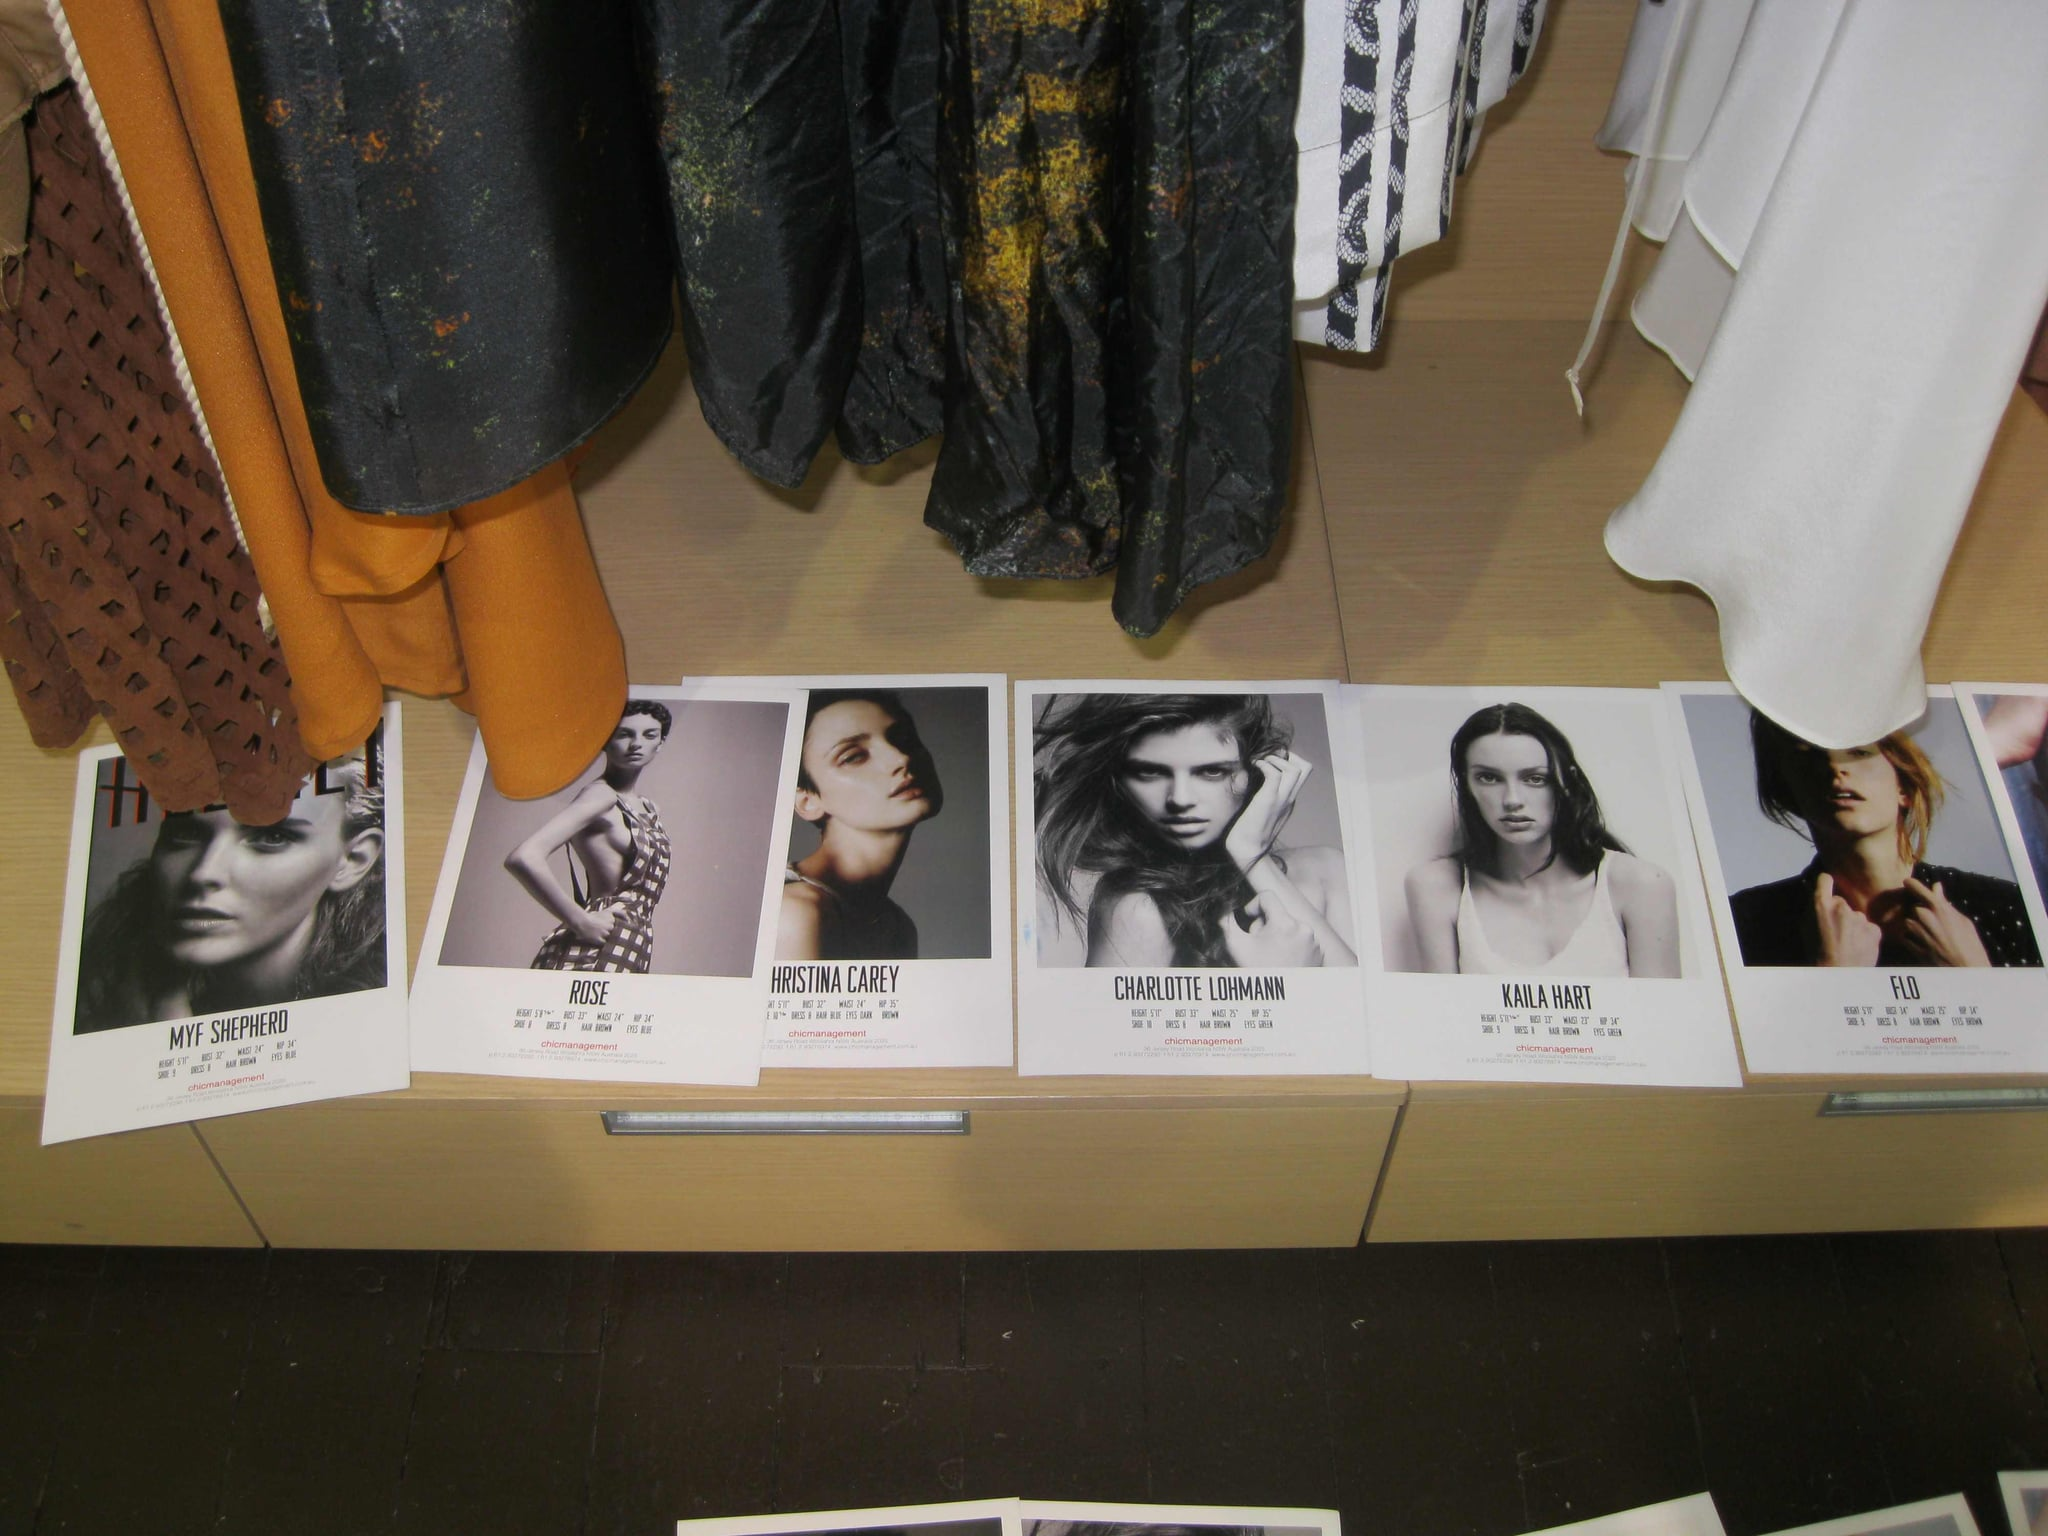 A selection of model cards from the casting; wonder which girls will make the grade?